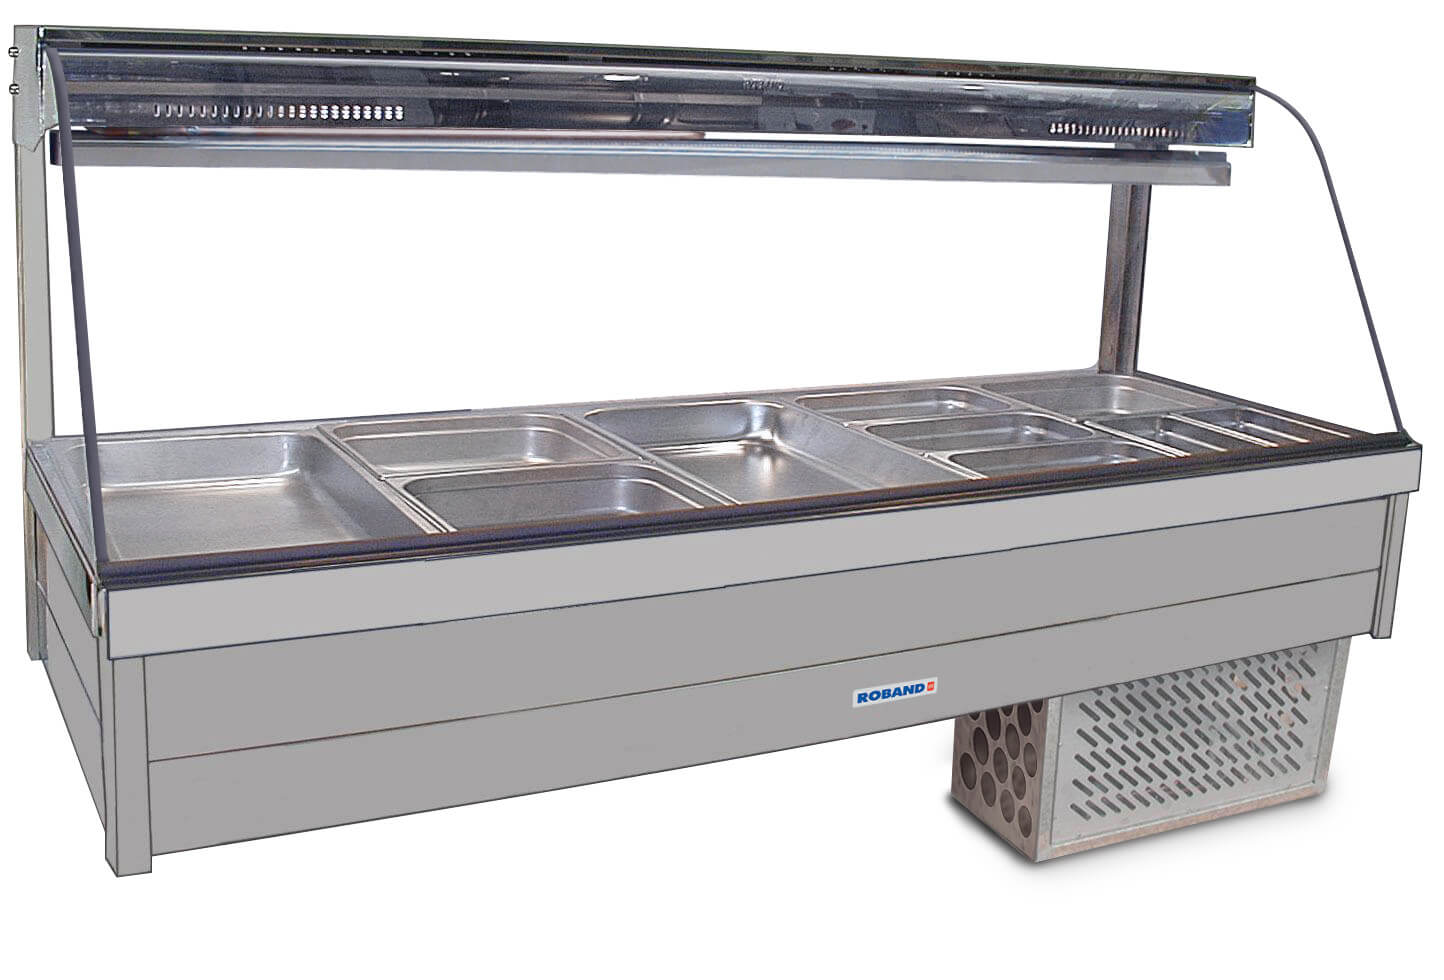 Roband Curved Glass Refrigerated Display Bar – Piped and Foamed only (no motor), 10 pans